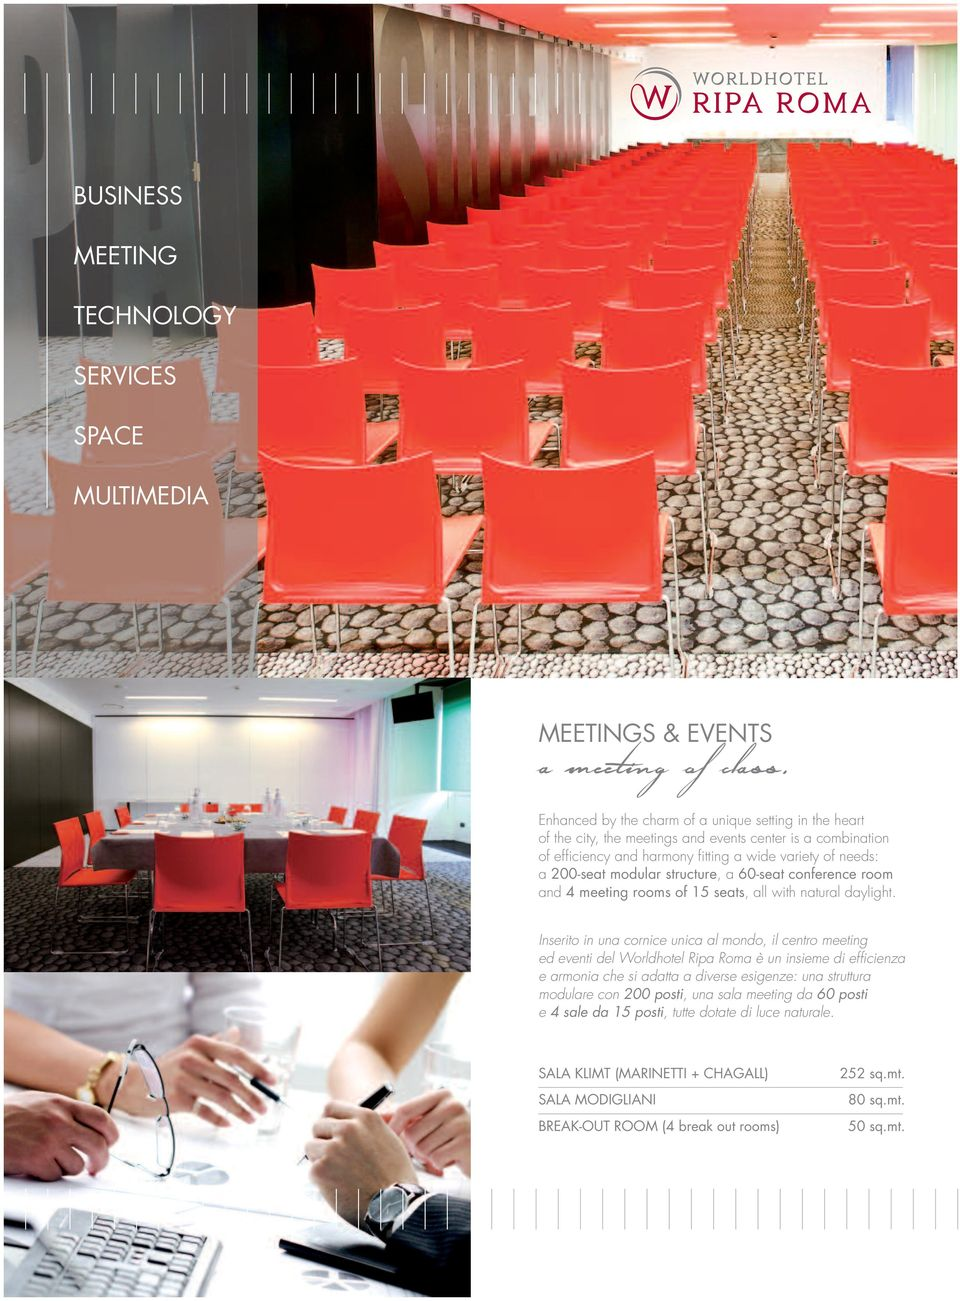 200-seat modular structure, a 60-seat conference room and 4 meeting rooms of 15 seats, all with natural daylight.